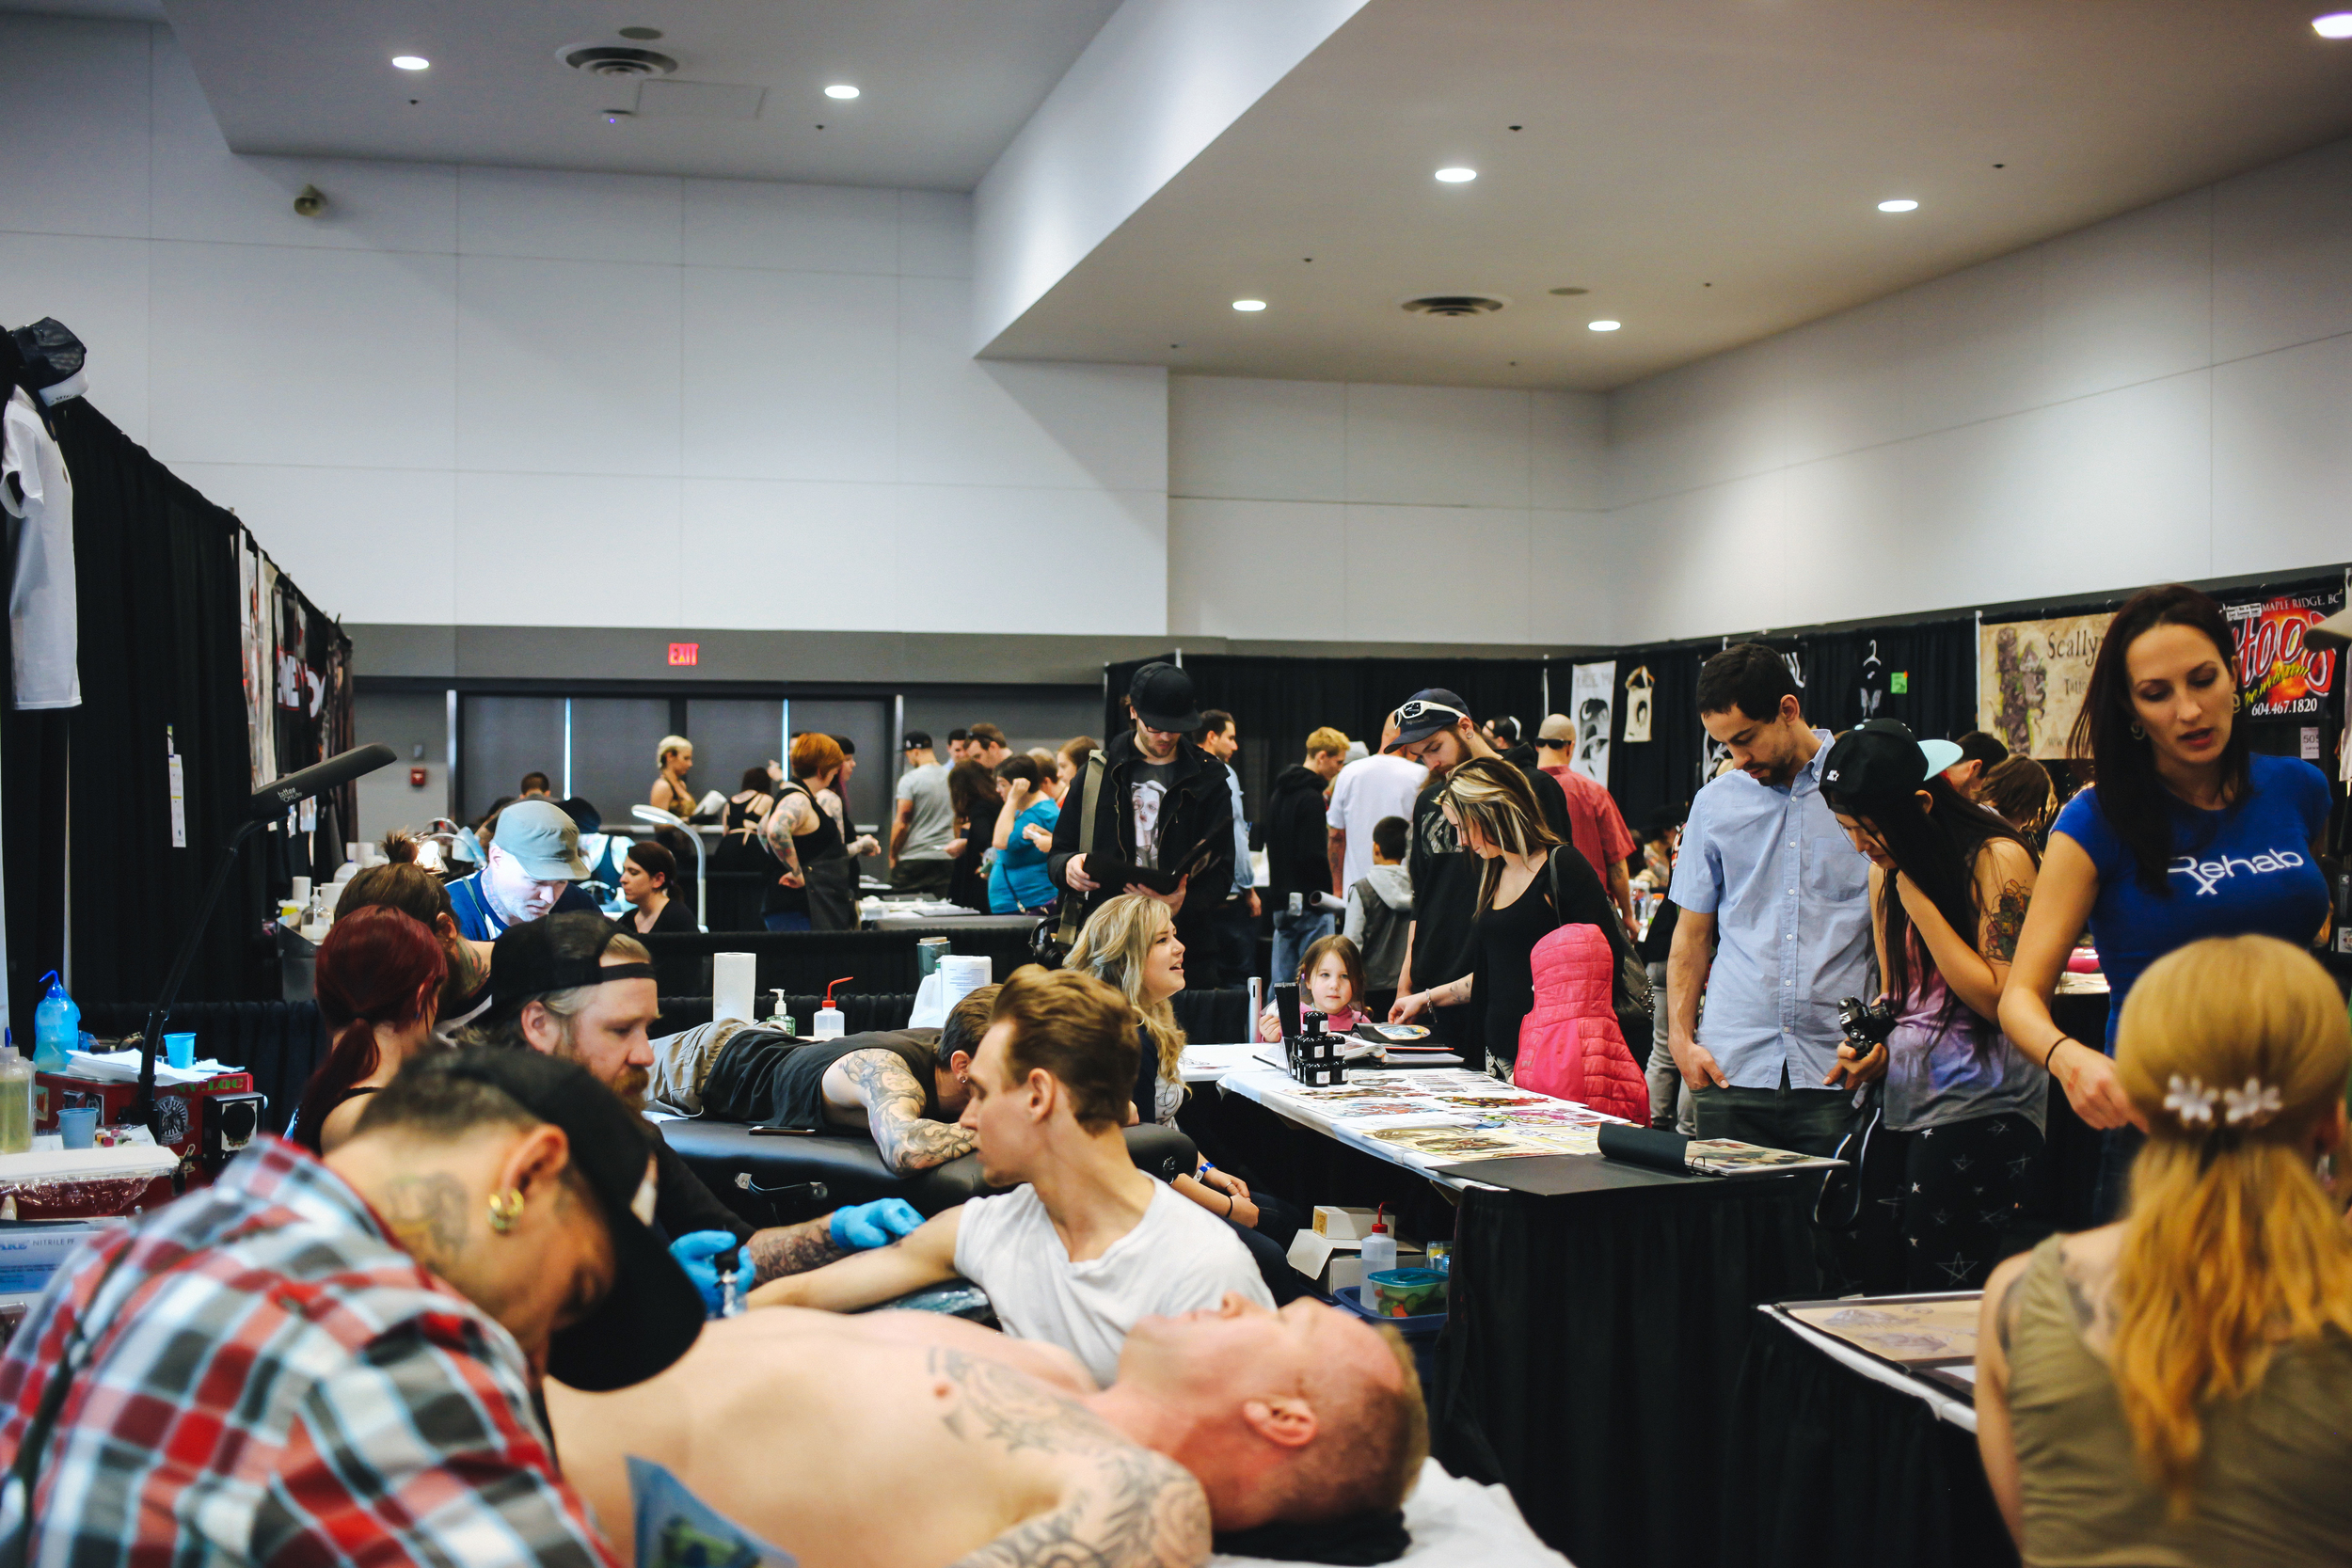 VancouverTattooConvention-25.jpg